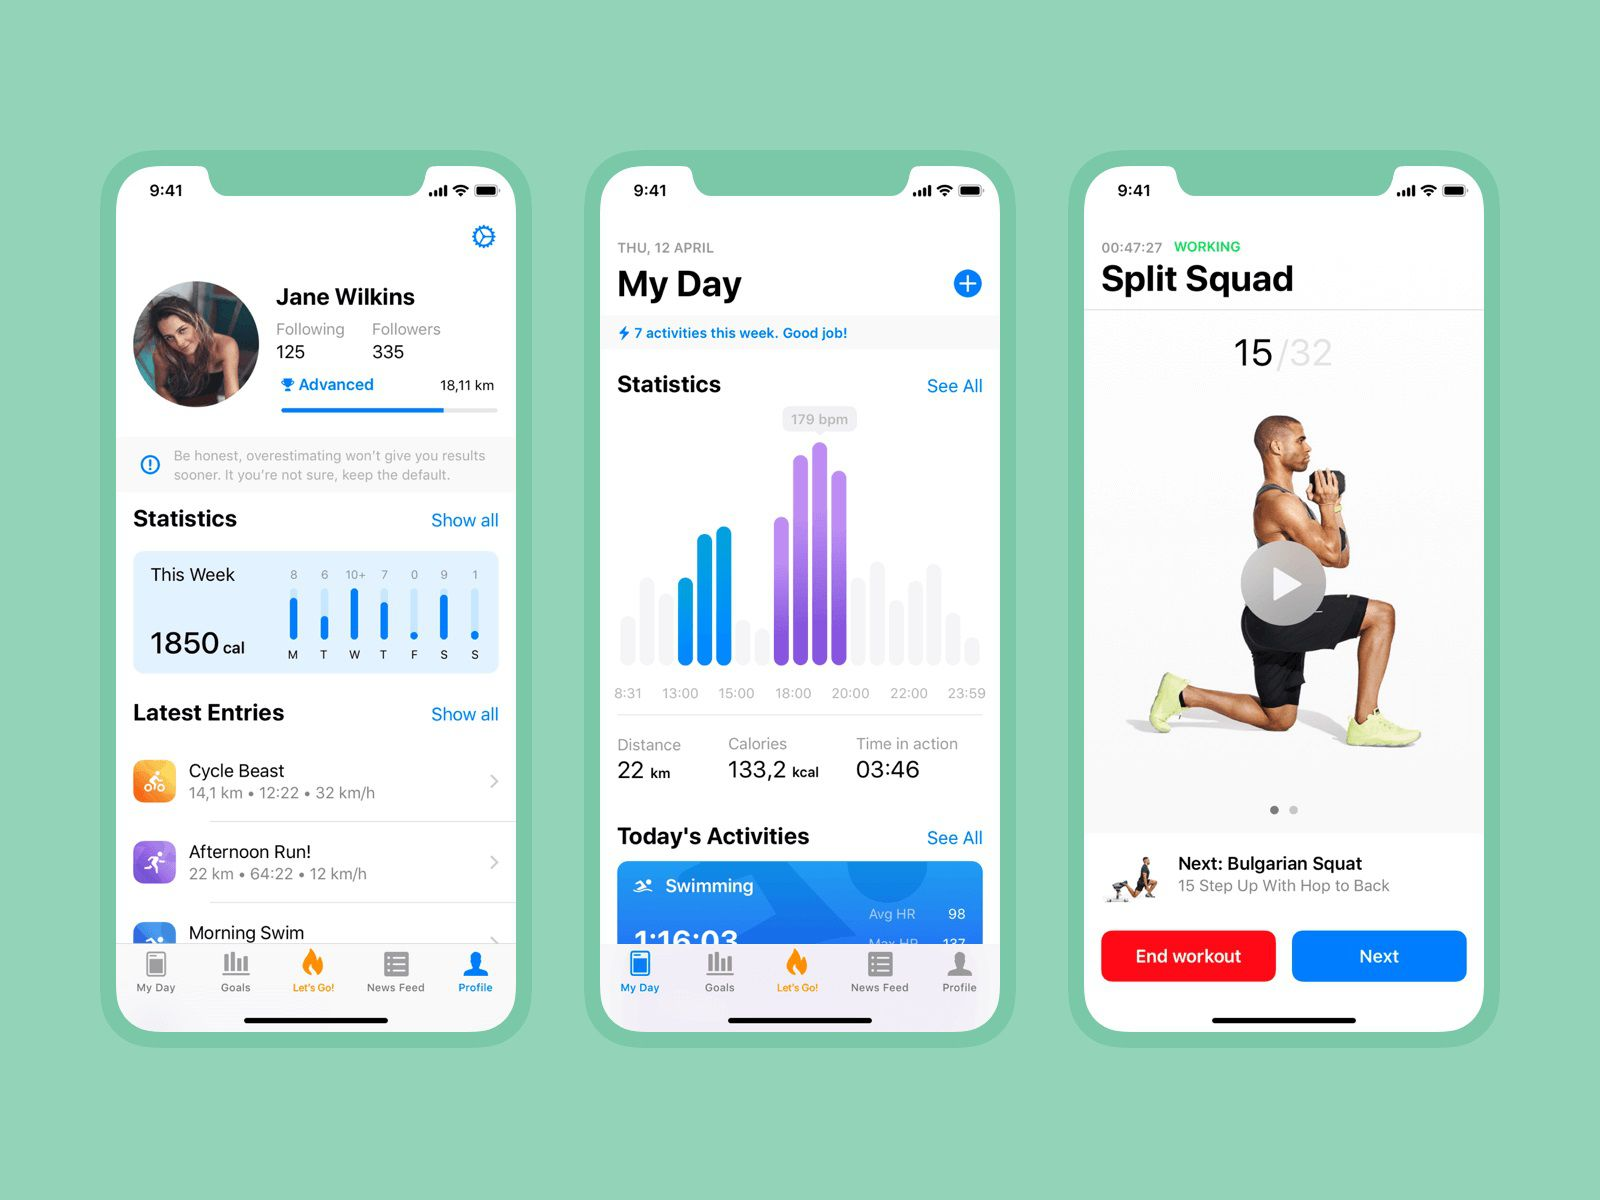 003 Wonderful Iphone App Design Template High Resolution  Templates Io Sketch Psd Free DownloadFull